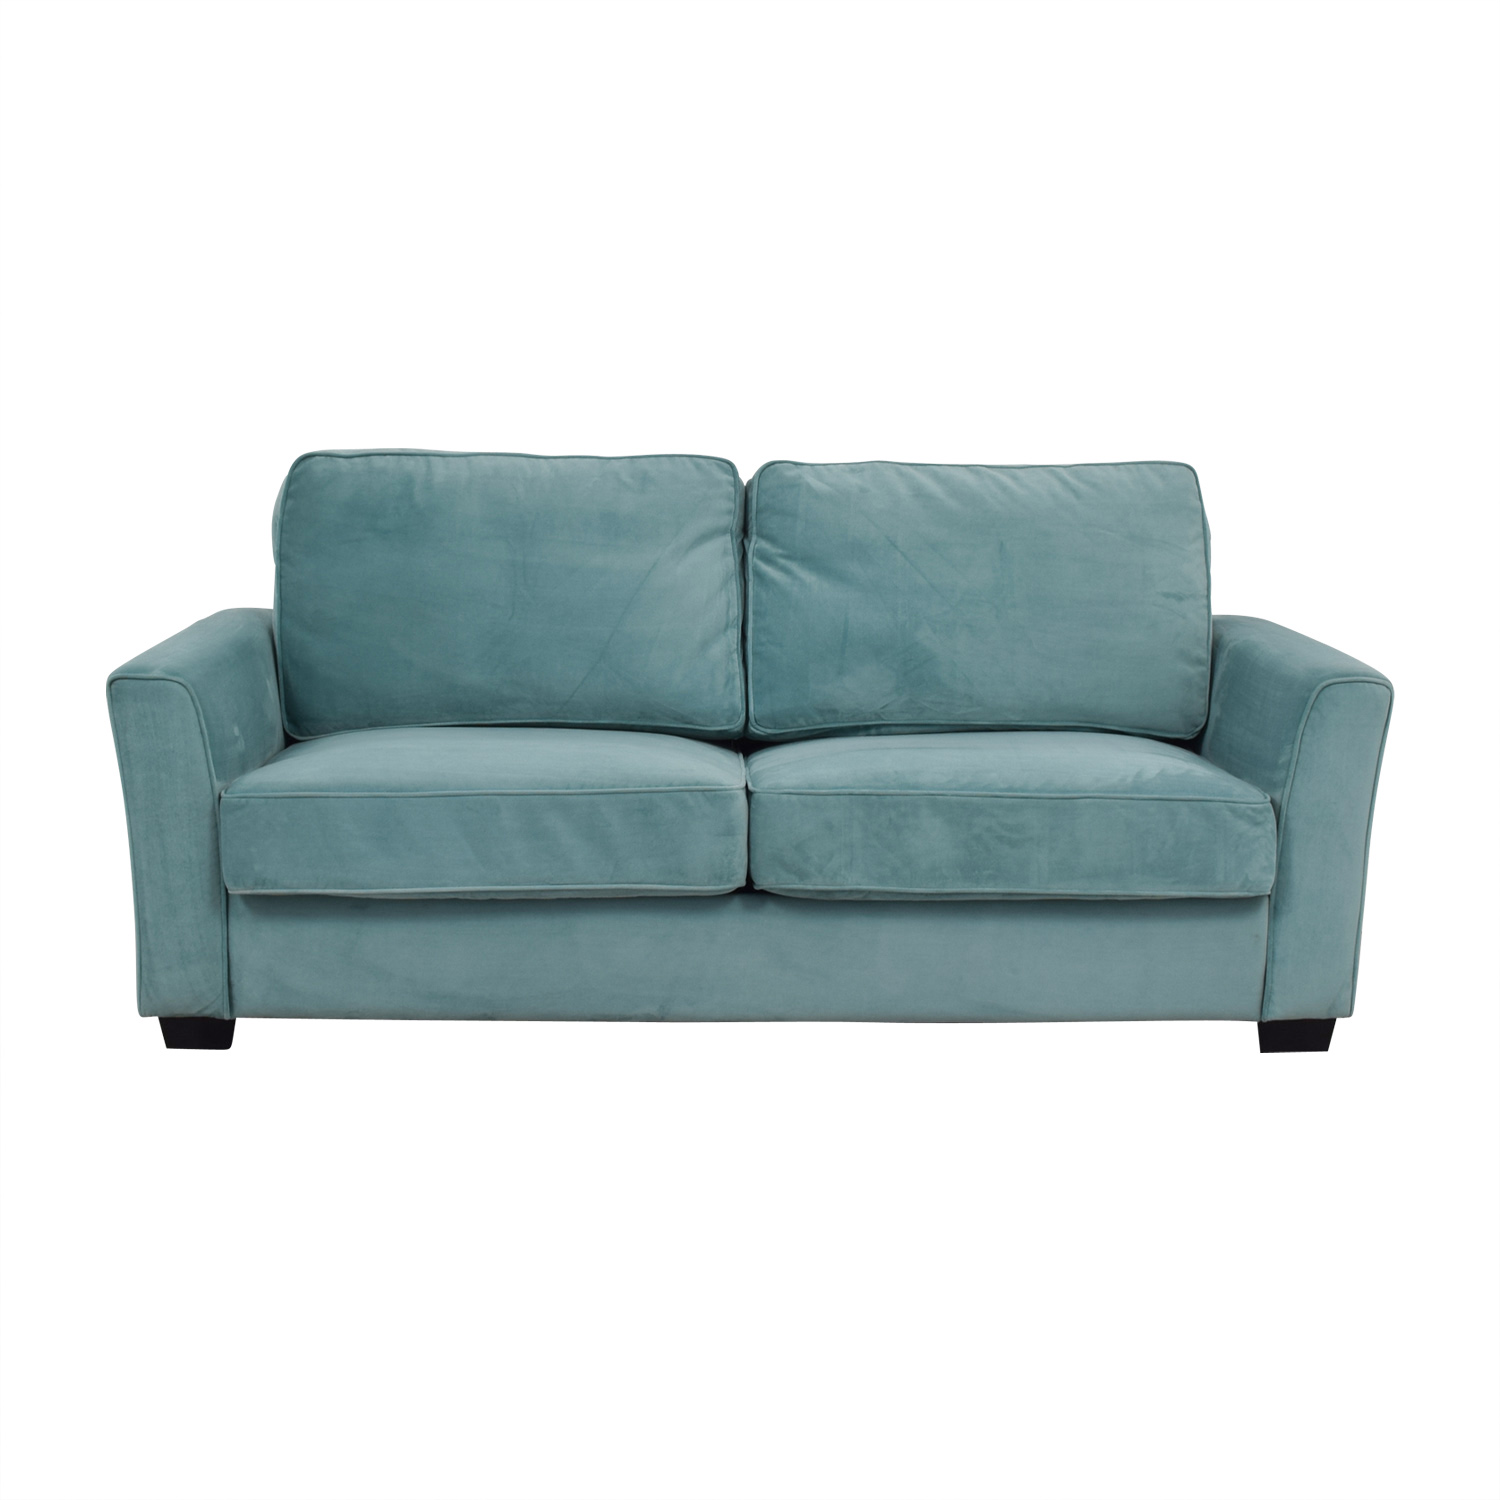 Turquoise Suede Two Cushion Sofa Second Hand